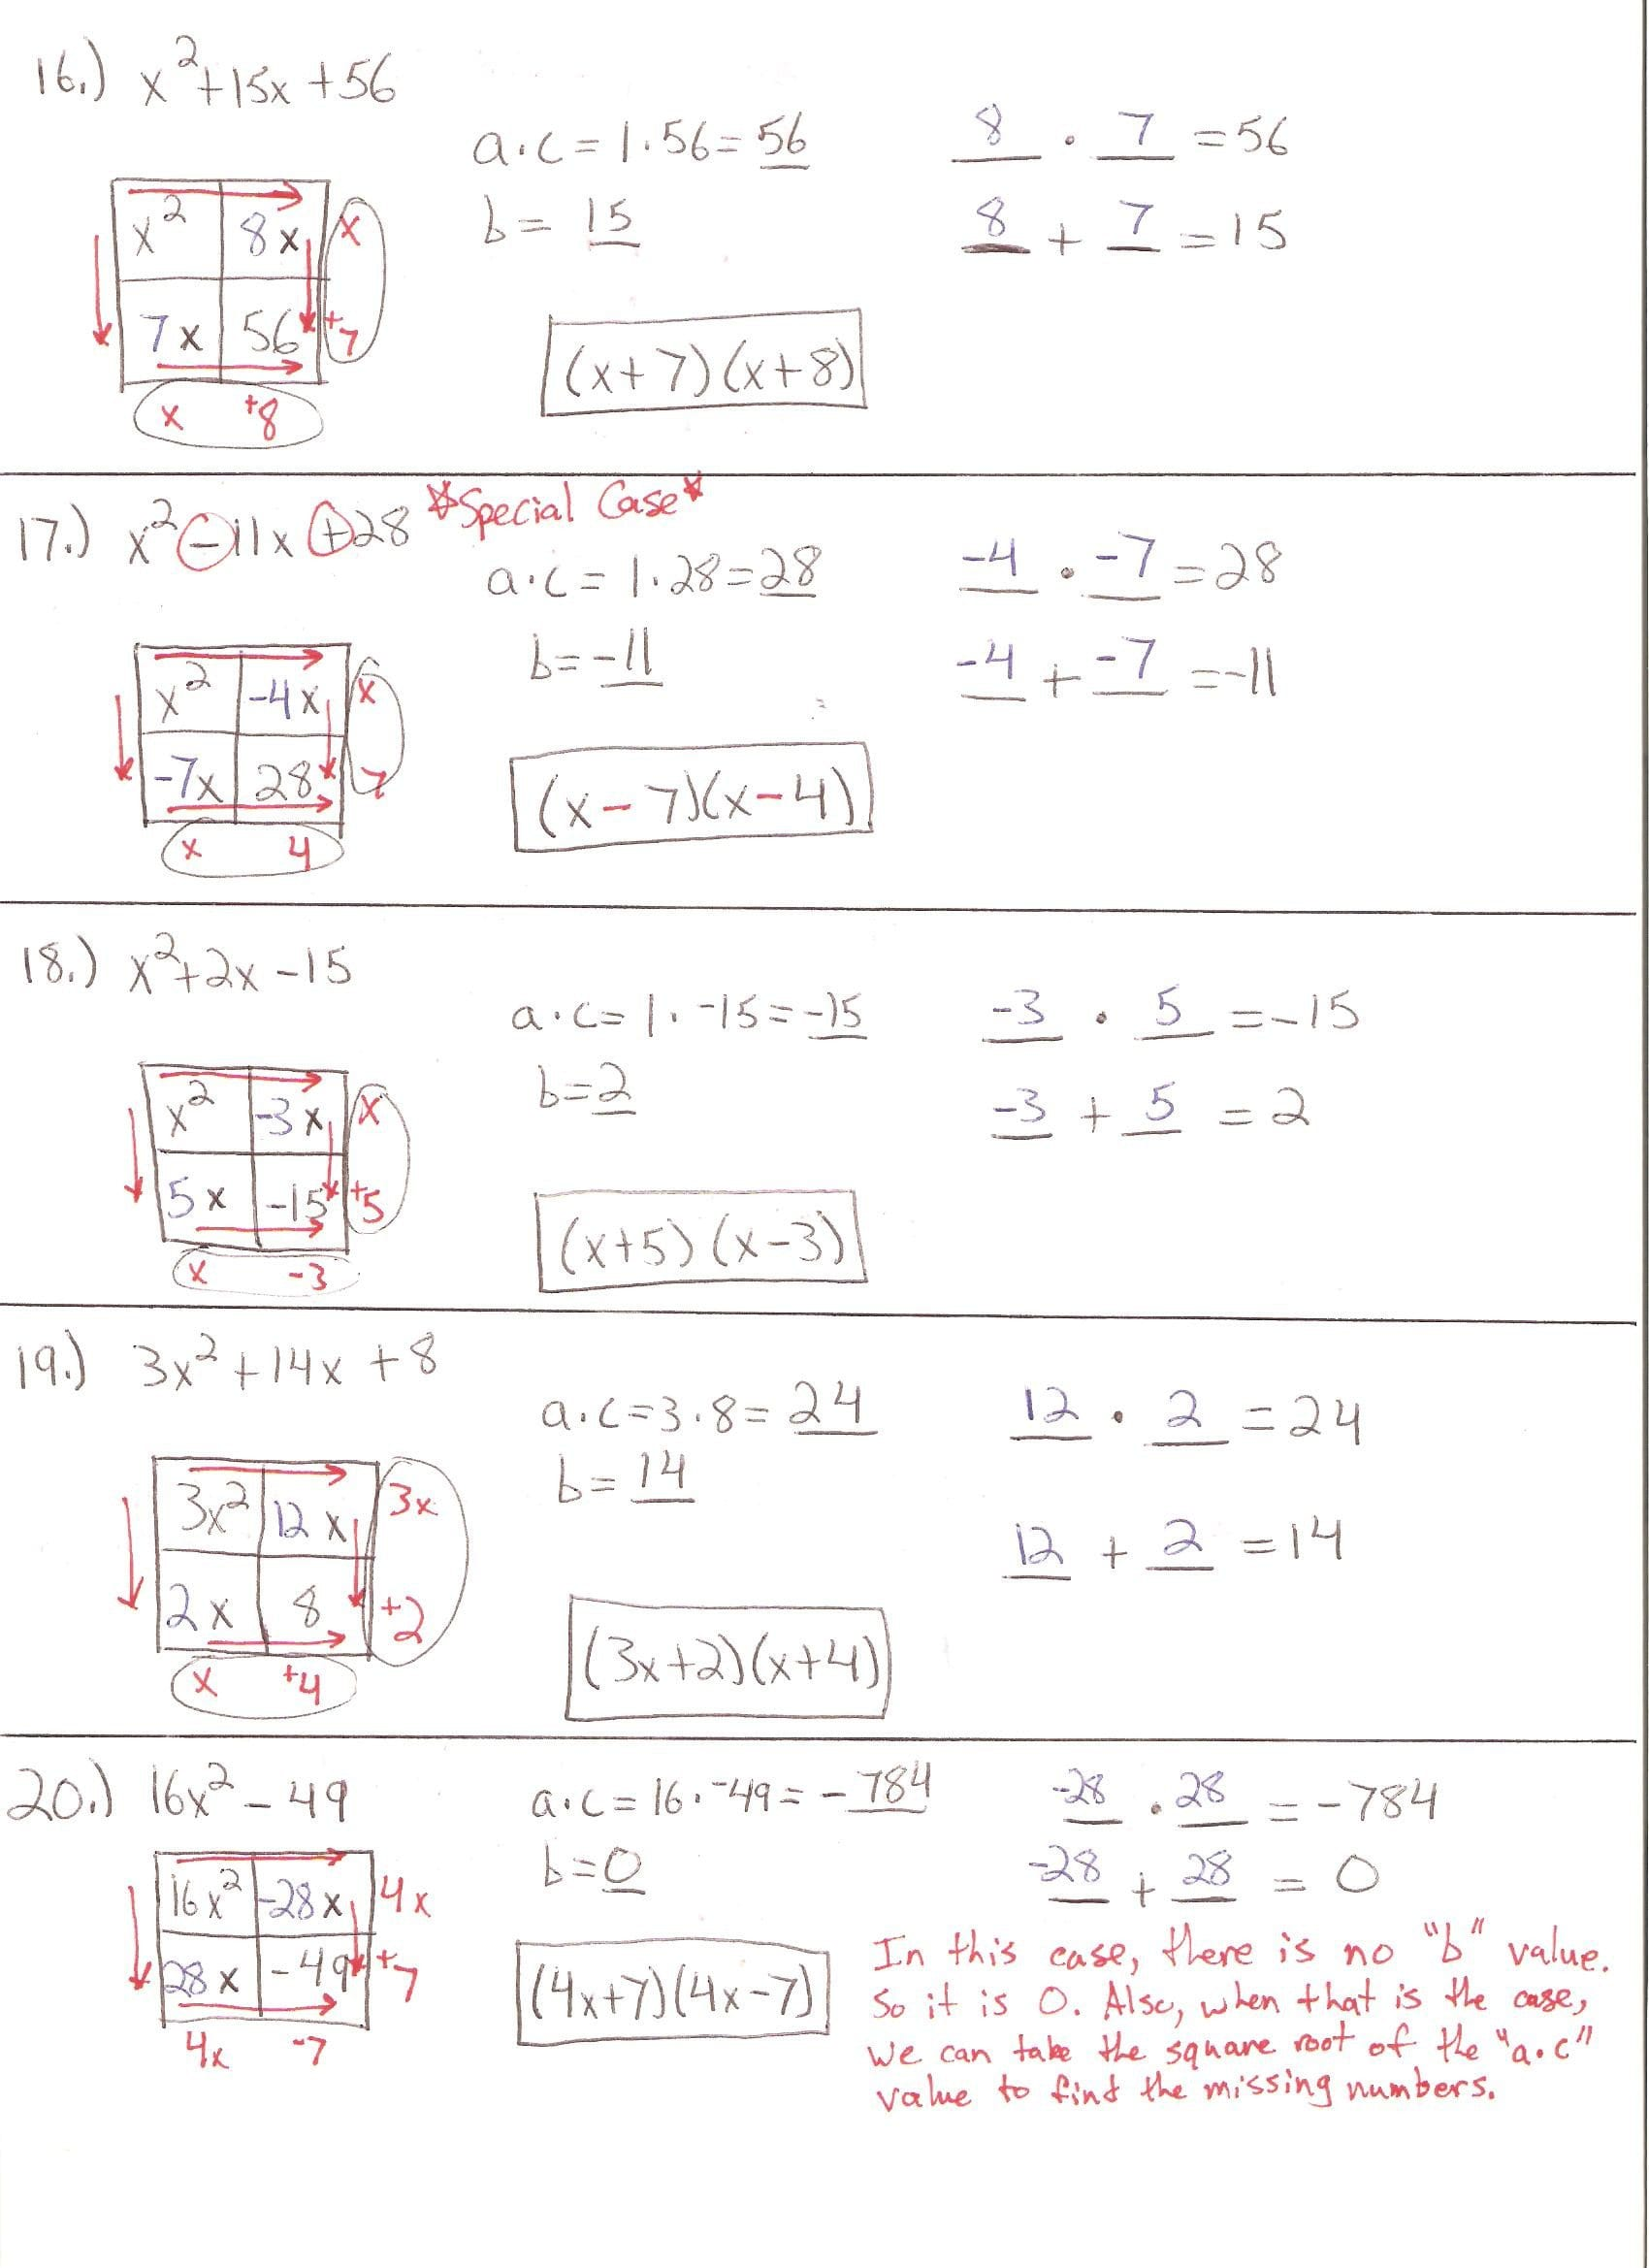 Algebra 2 Assignment Evaluate Each Function  Justswimfl As Well As Algebra 2 Worksheets With Answer Key